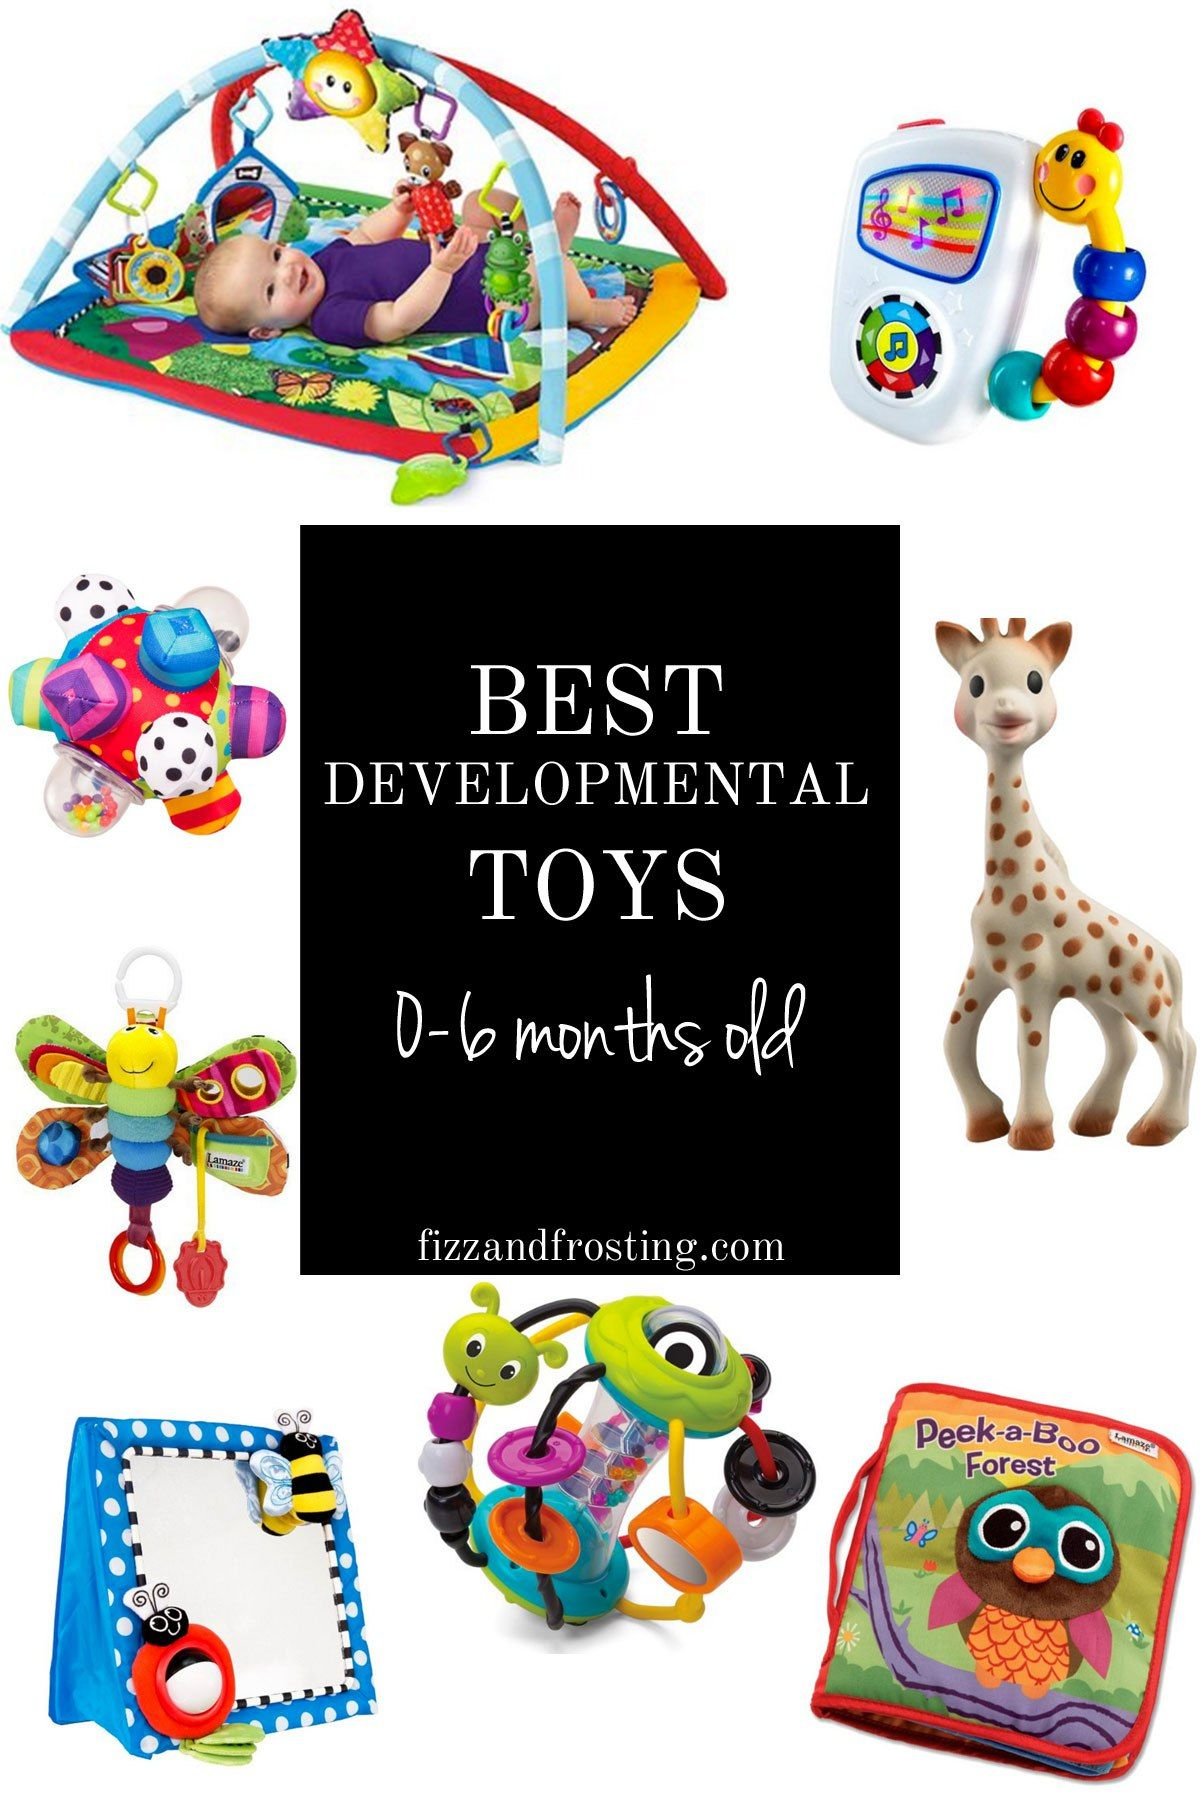 1bca6d6225a0 developmental toys for 0-6 months old